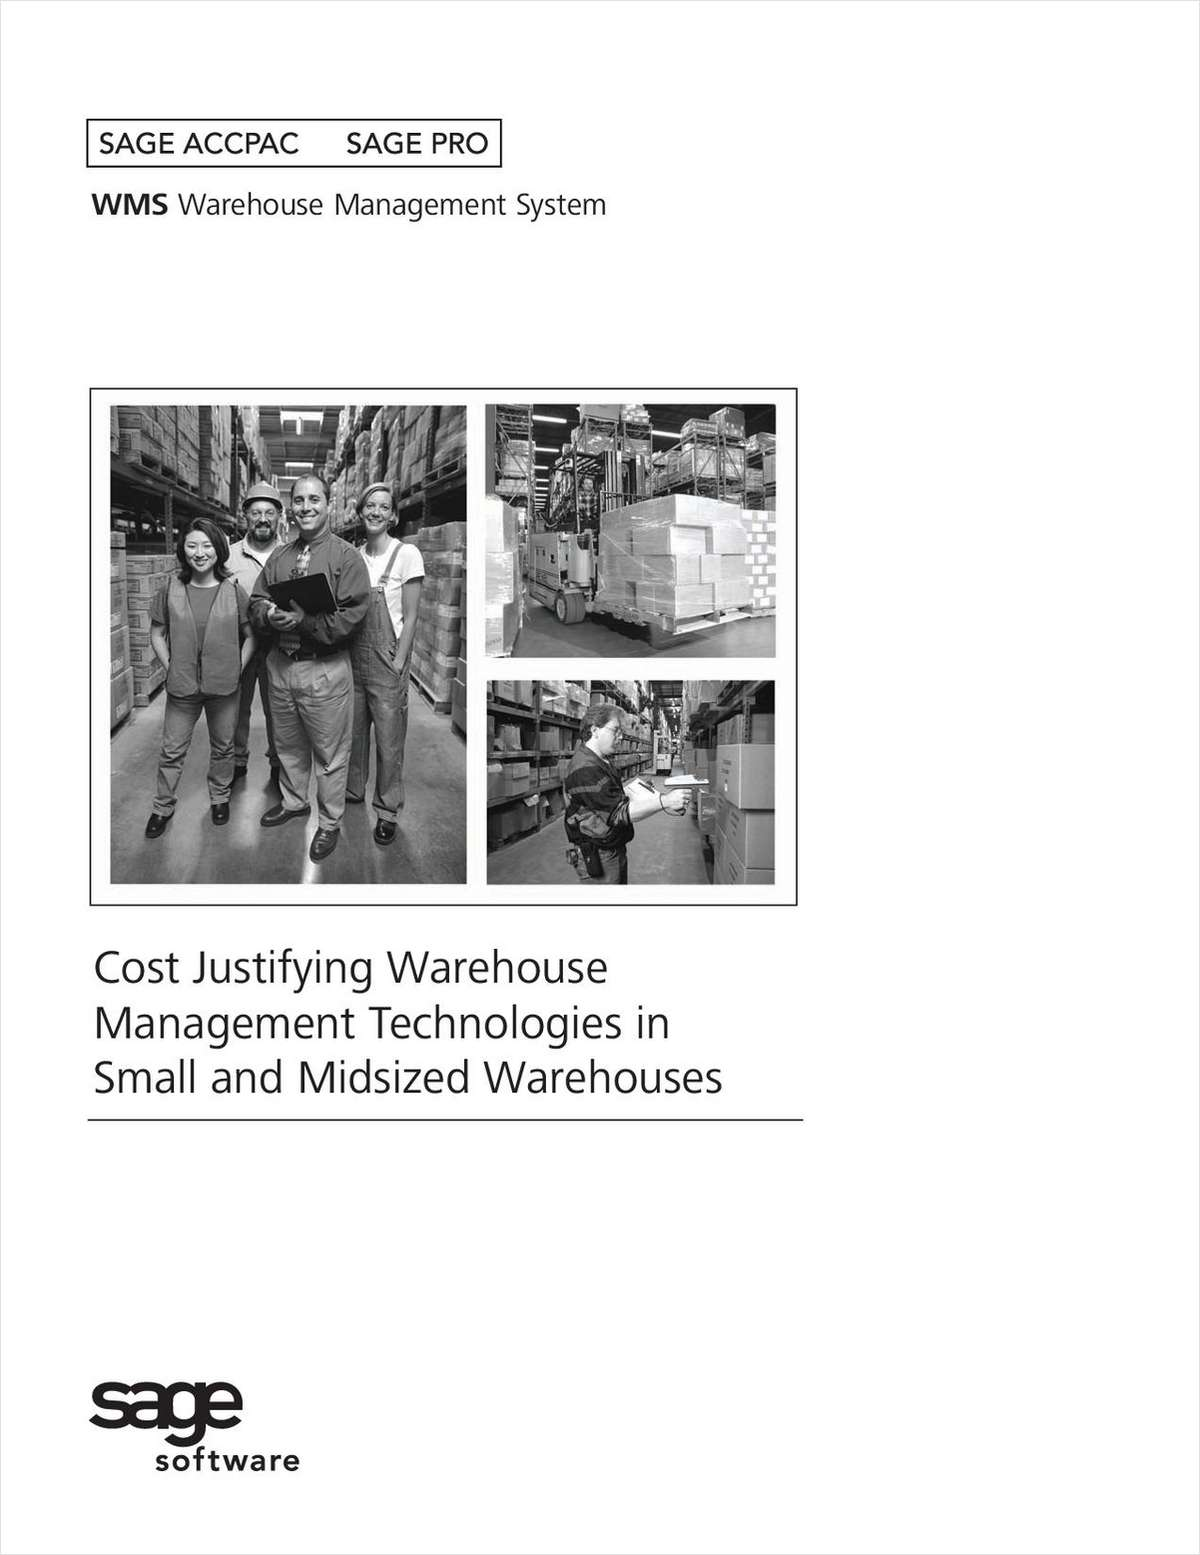 Small and Midsized Warehouses: Cost Justifying Warehouse Management Technologies